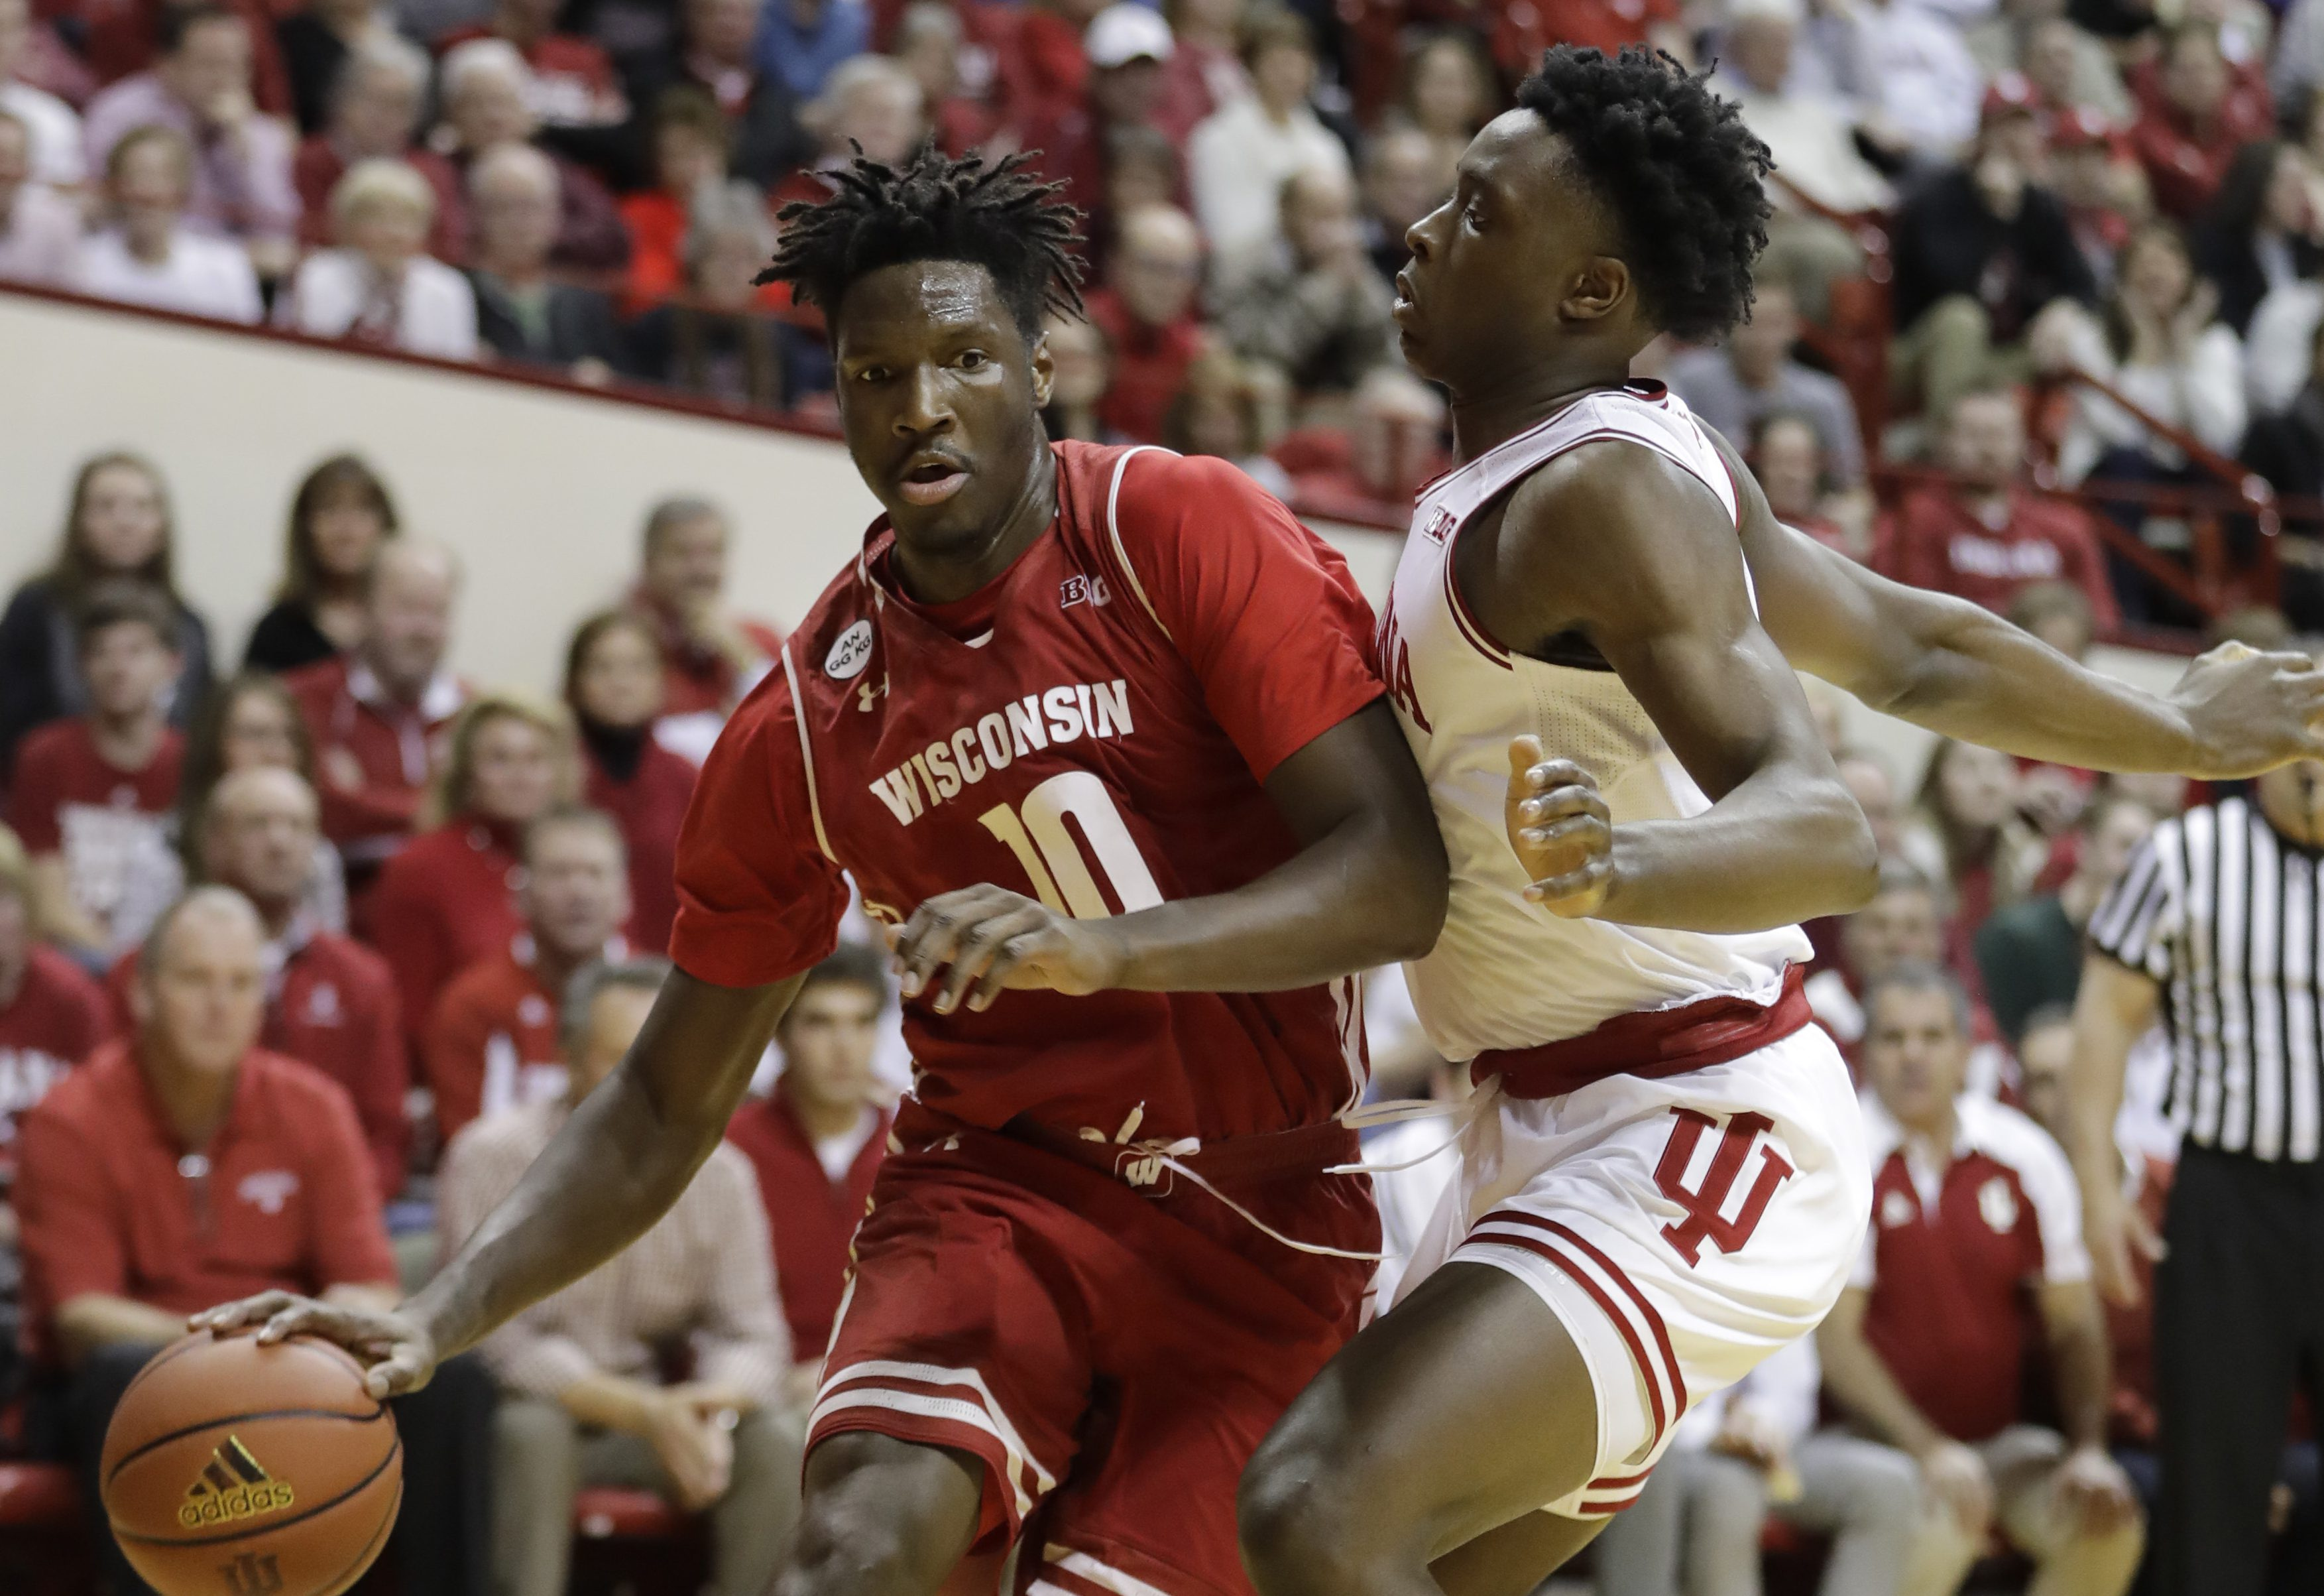 Wisconsin's Nigel Hayes is defended by Indiana's OG Anunoby during the first half of an NCAA college basketball game Tuesday, Jan. 3, 2017, in Bloomington Ind. (AP Photo/Darron Cummings)